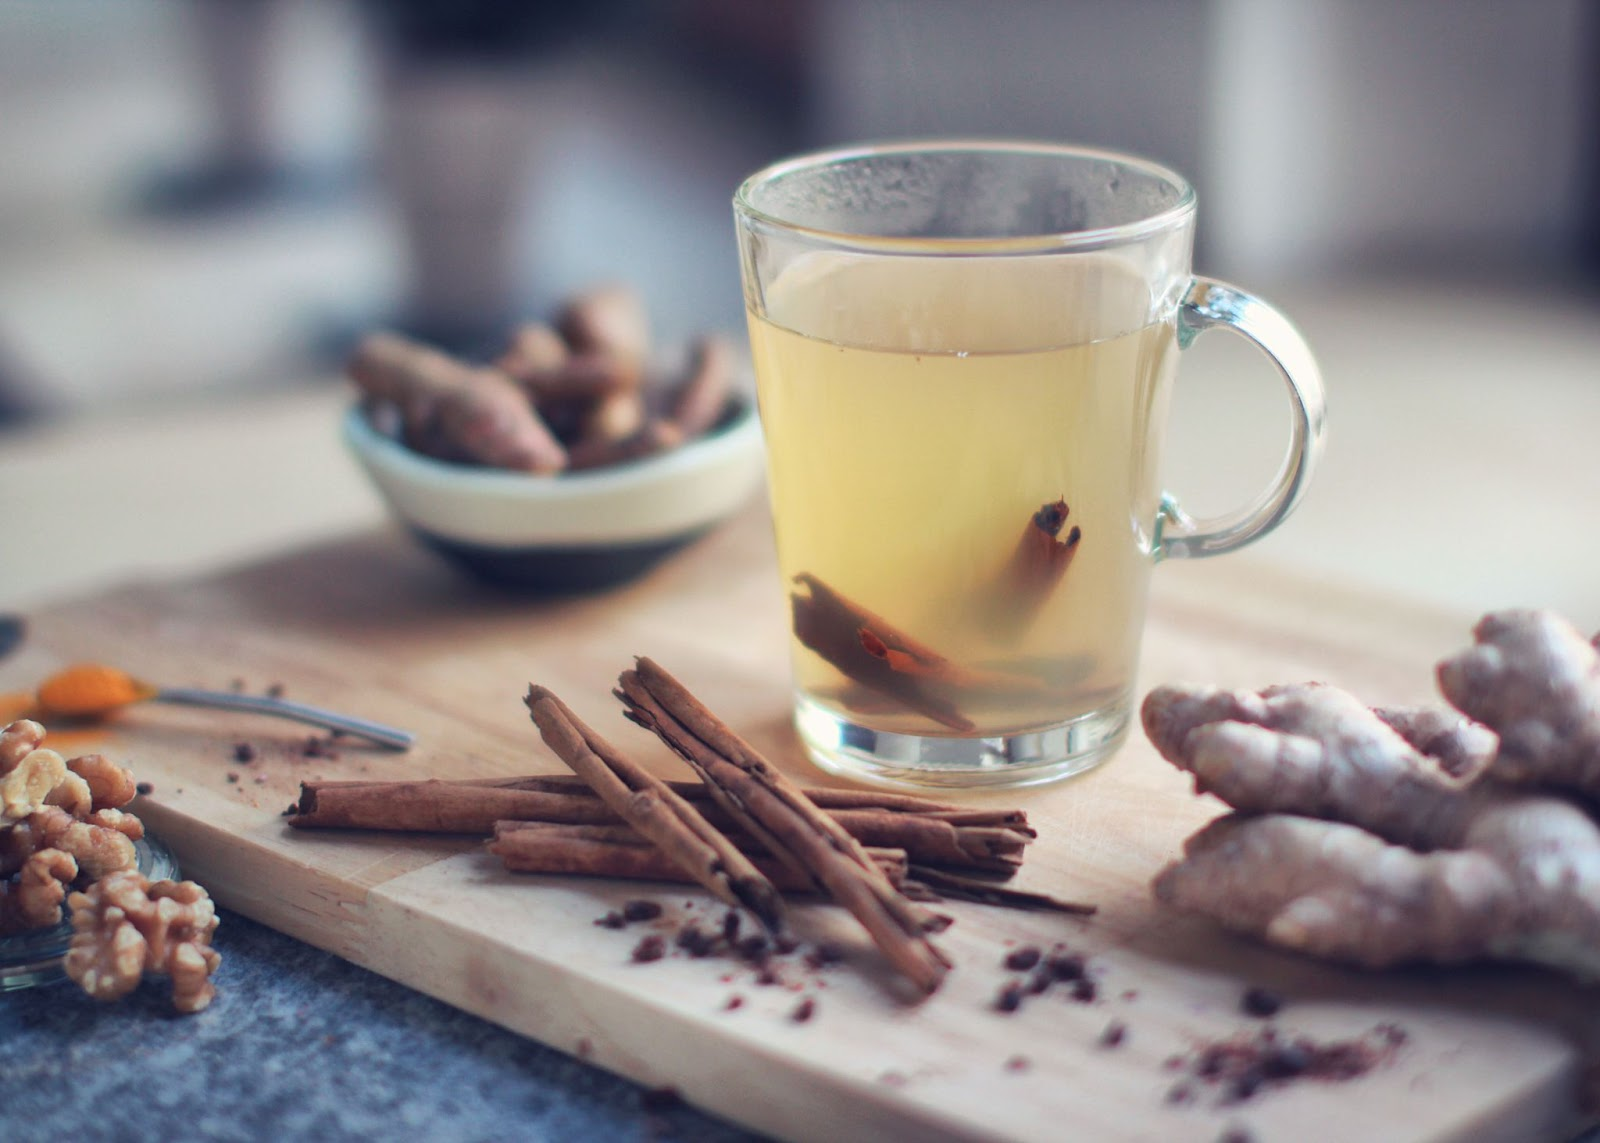 A glass cup filled with cinnamon tea for candida.